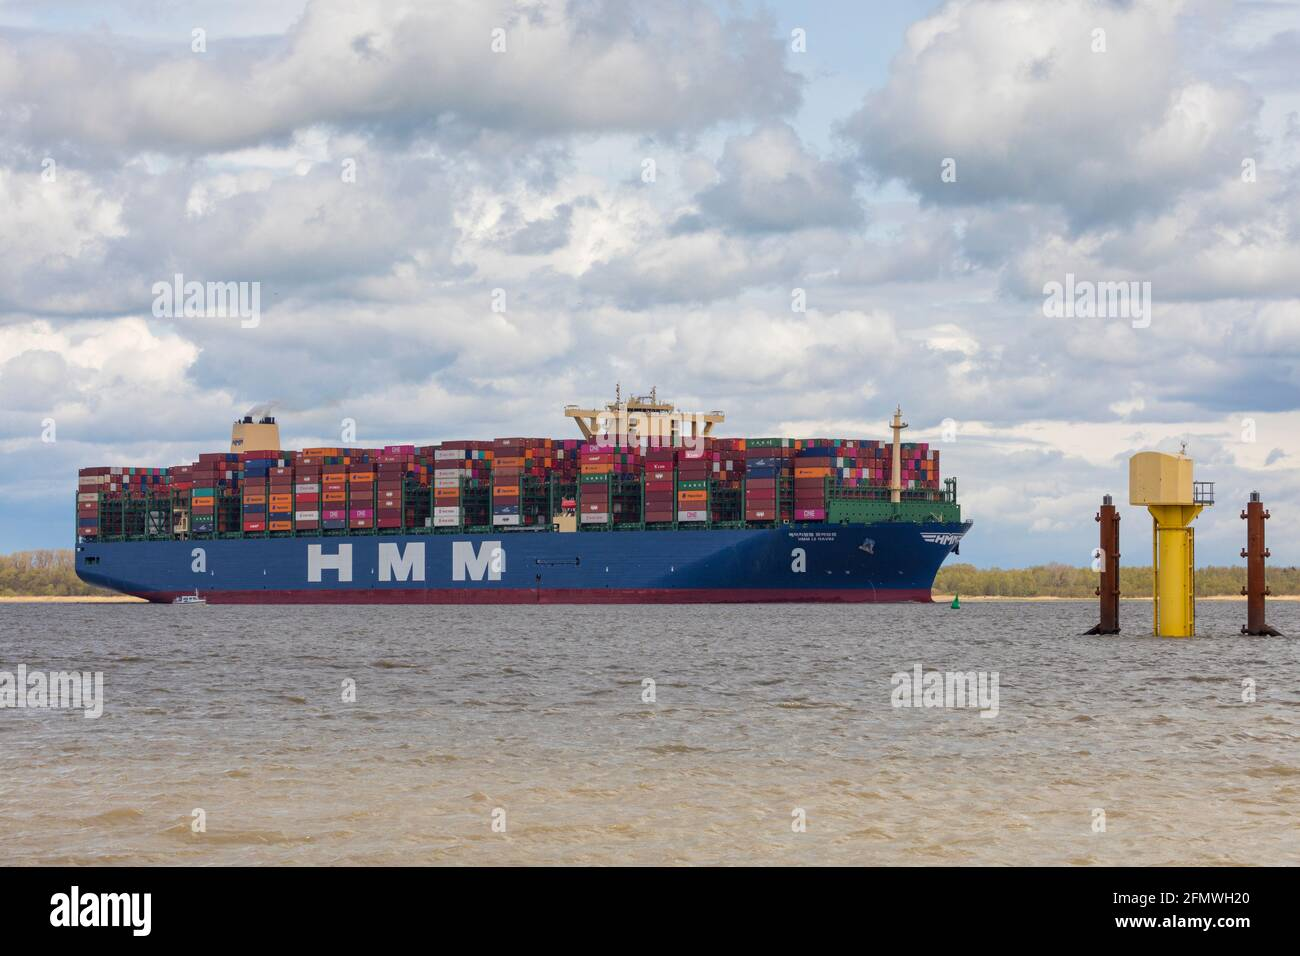 Stade, Germany – May 7, 2021: HMM LE HAVRE, with her sister ships of the Megamax-class the  largest container vessel worldwide. Stock Photo